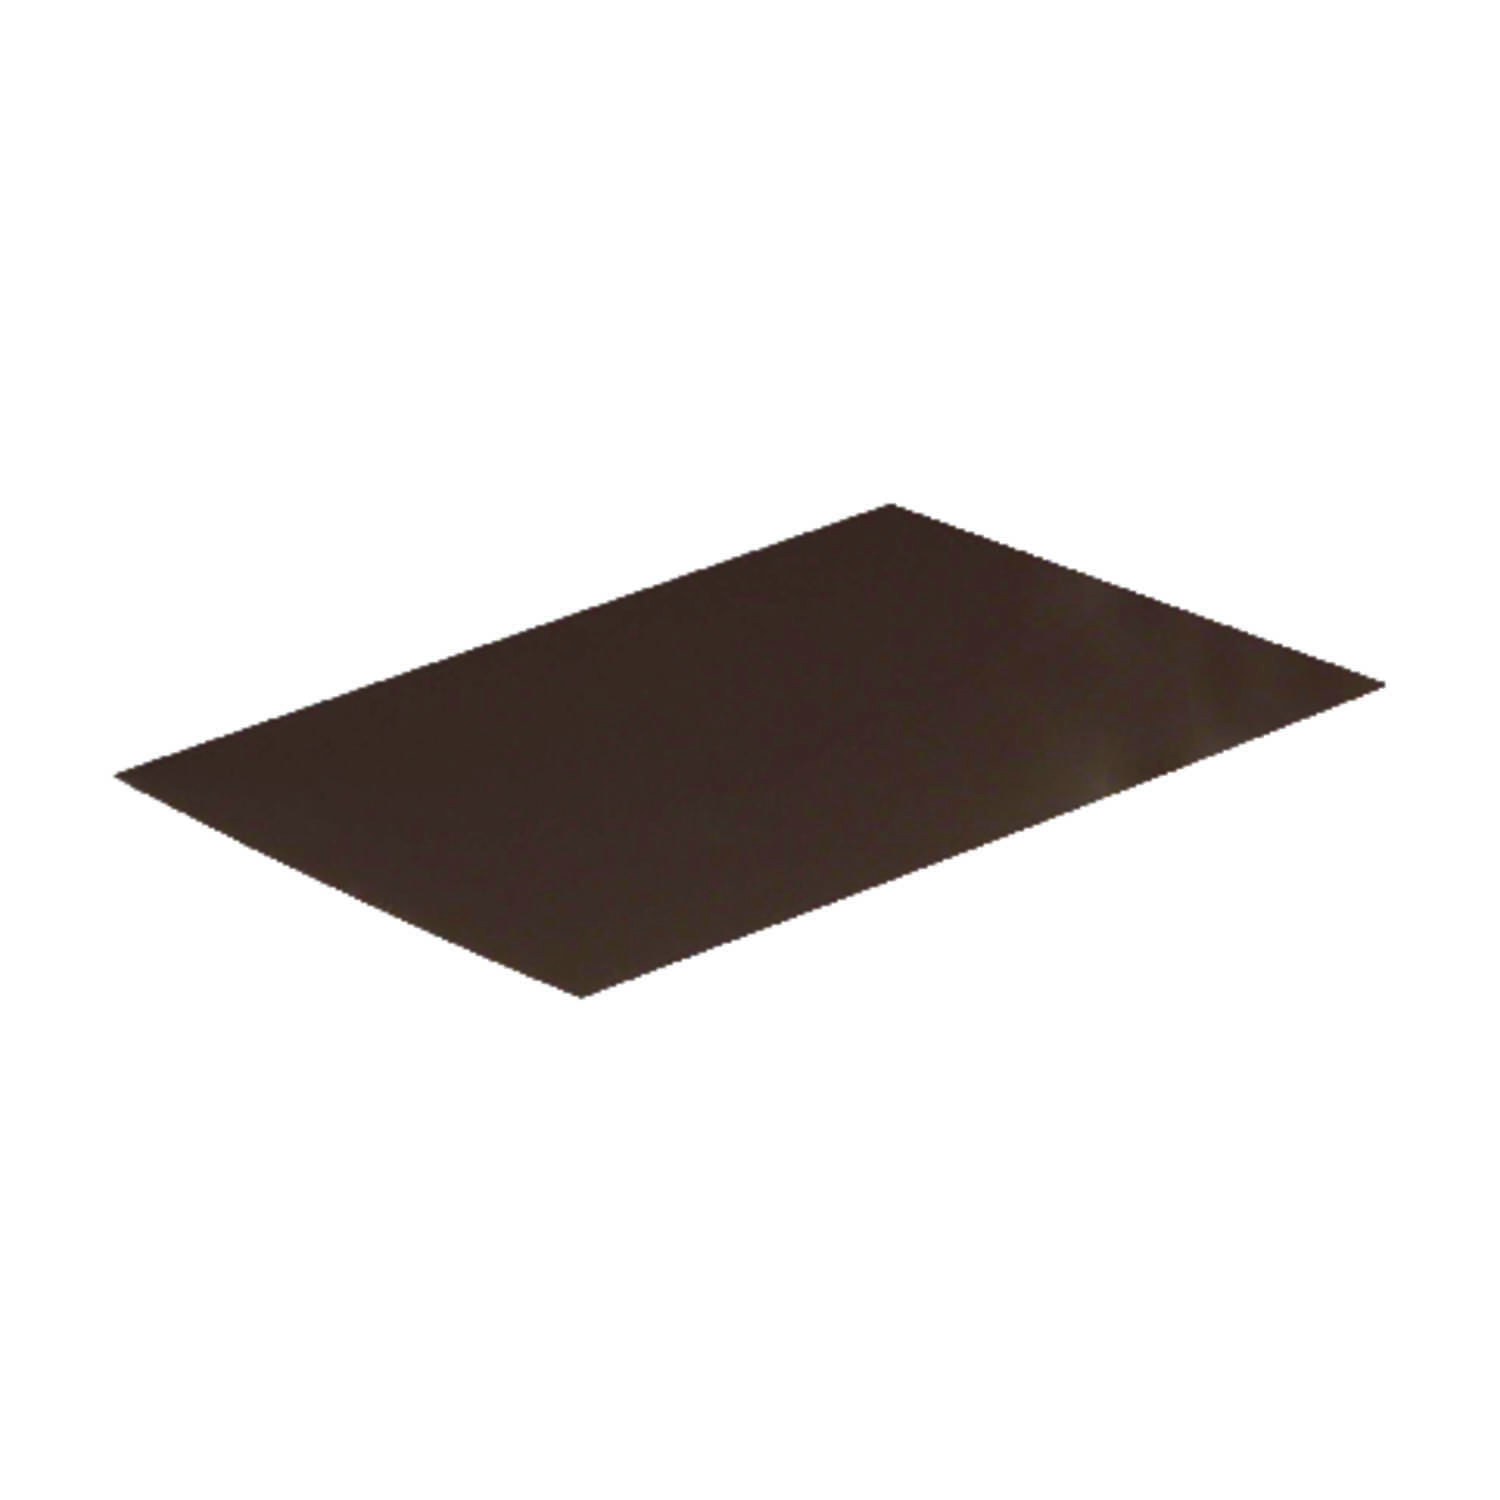 Amerimax  5 in. H x 5 in. W x 7 ft. L Aluminum  Brown  Step Flashing Shingle  Rectangle